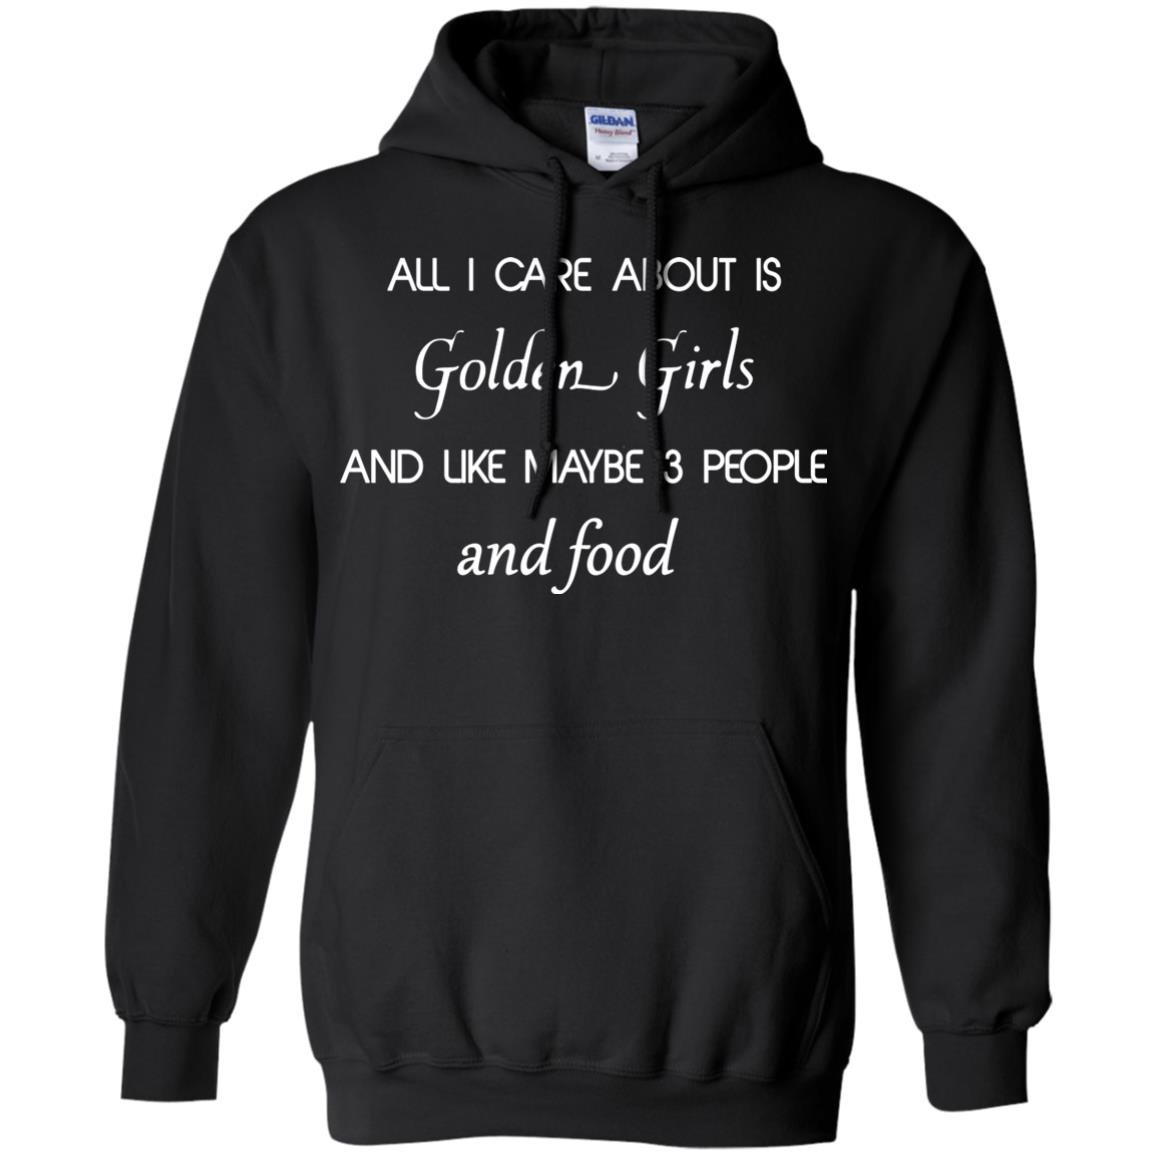 image 2689 - All I Care About Is Golden Girls Shirt, Hoodie